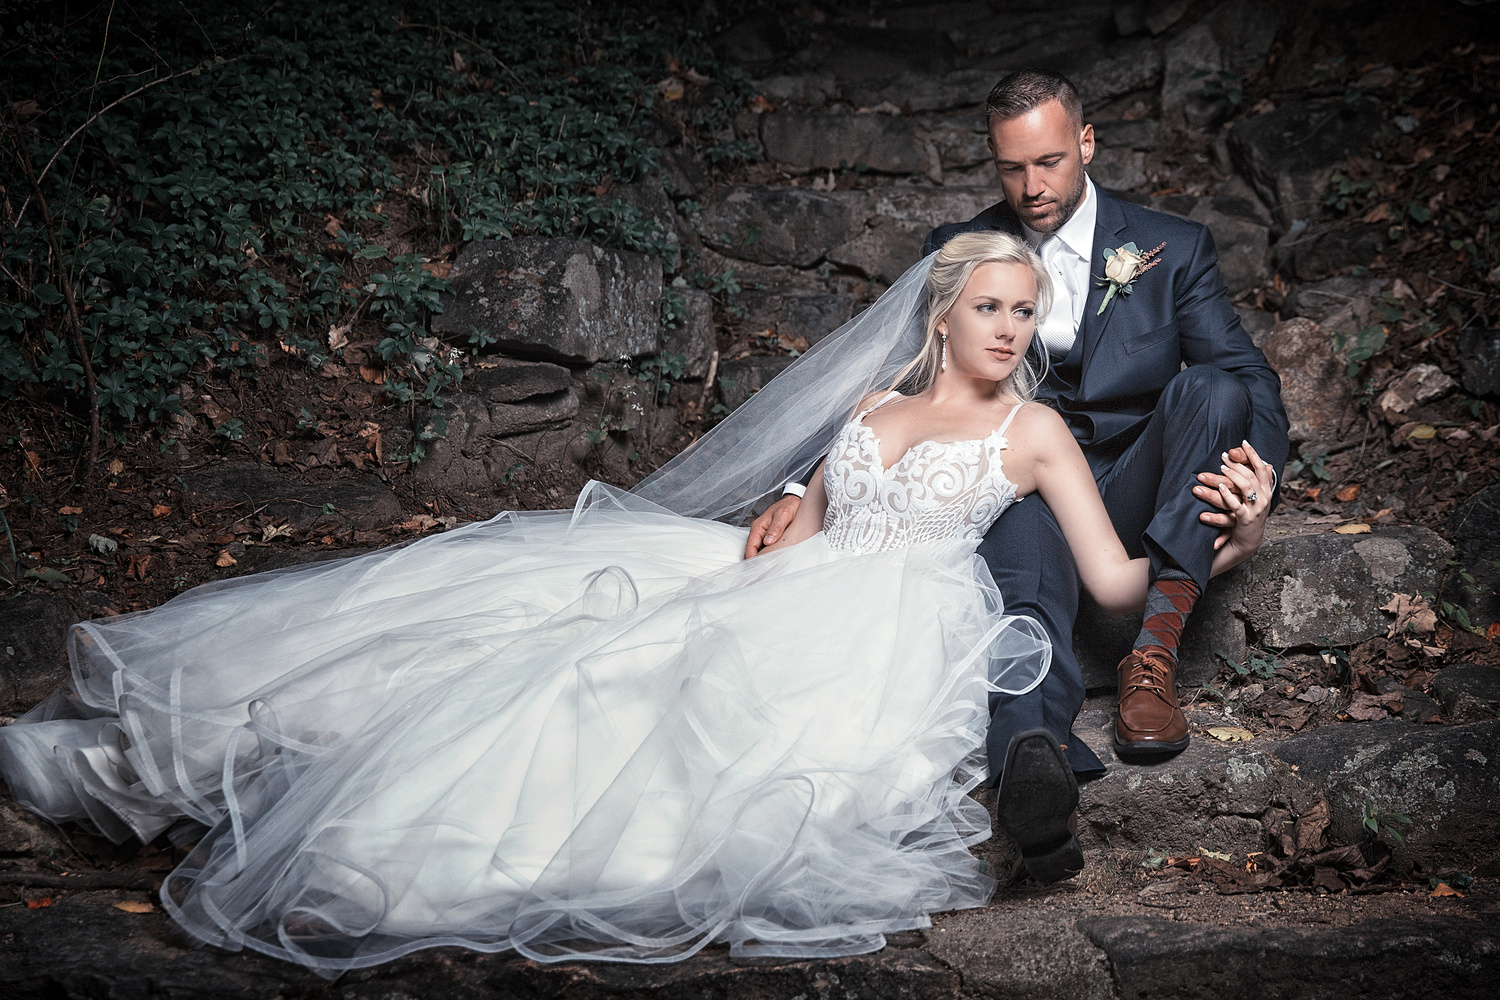 Bride laying in Groom's lap by Joseph Humphries